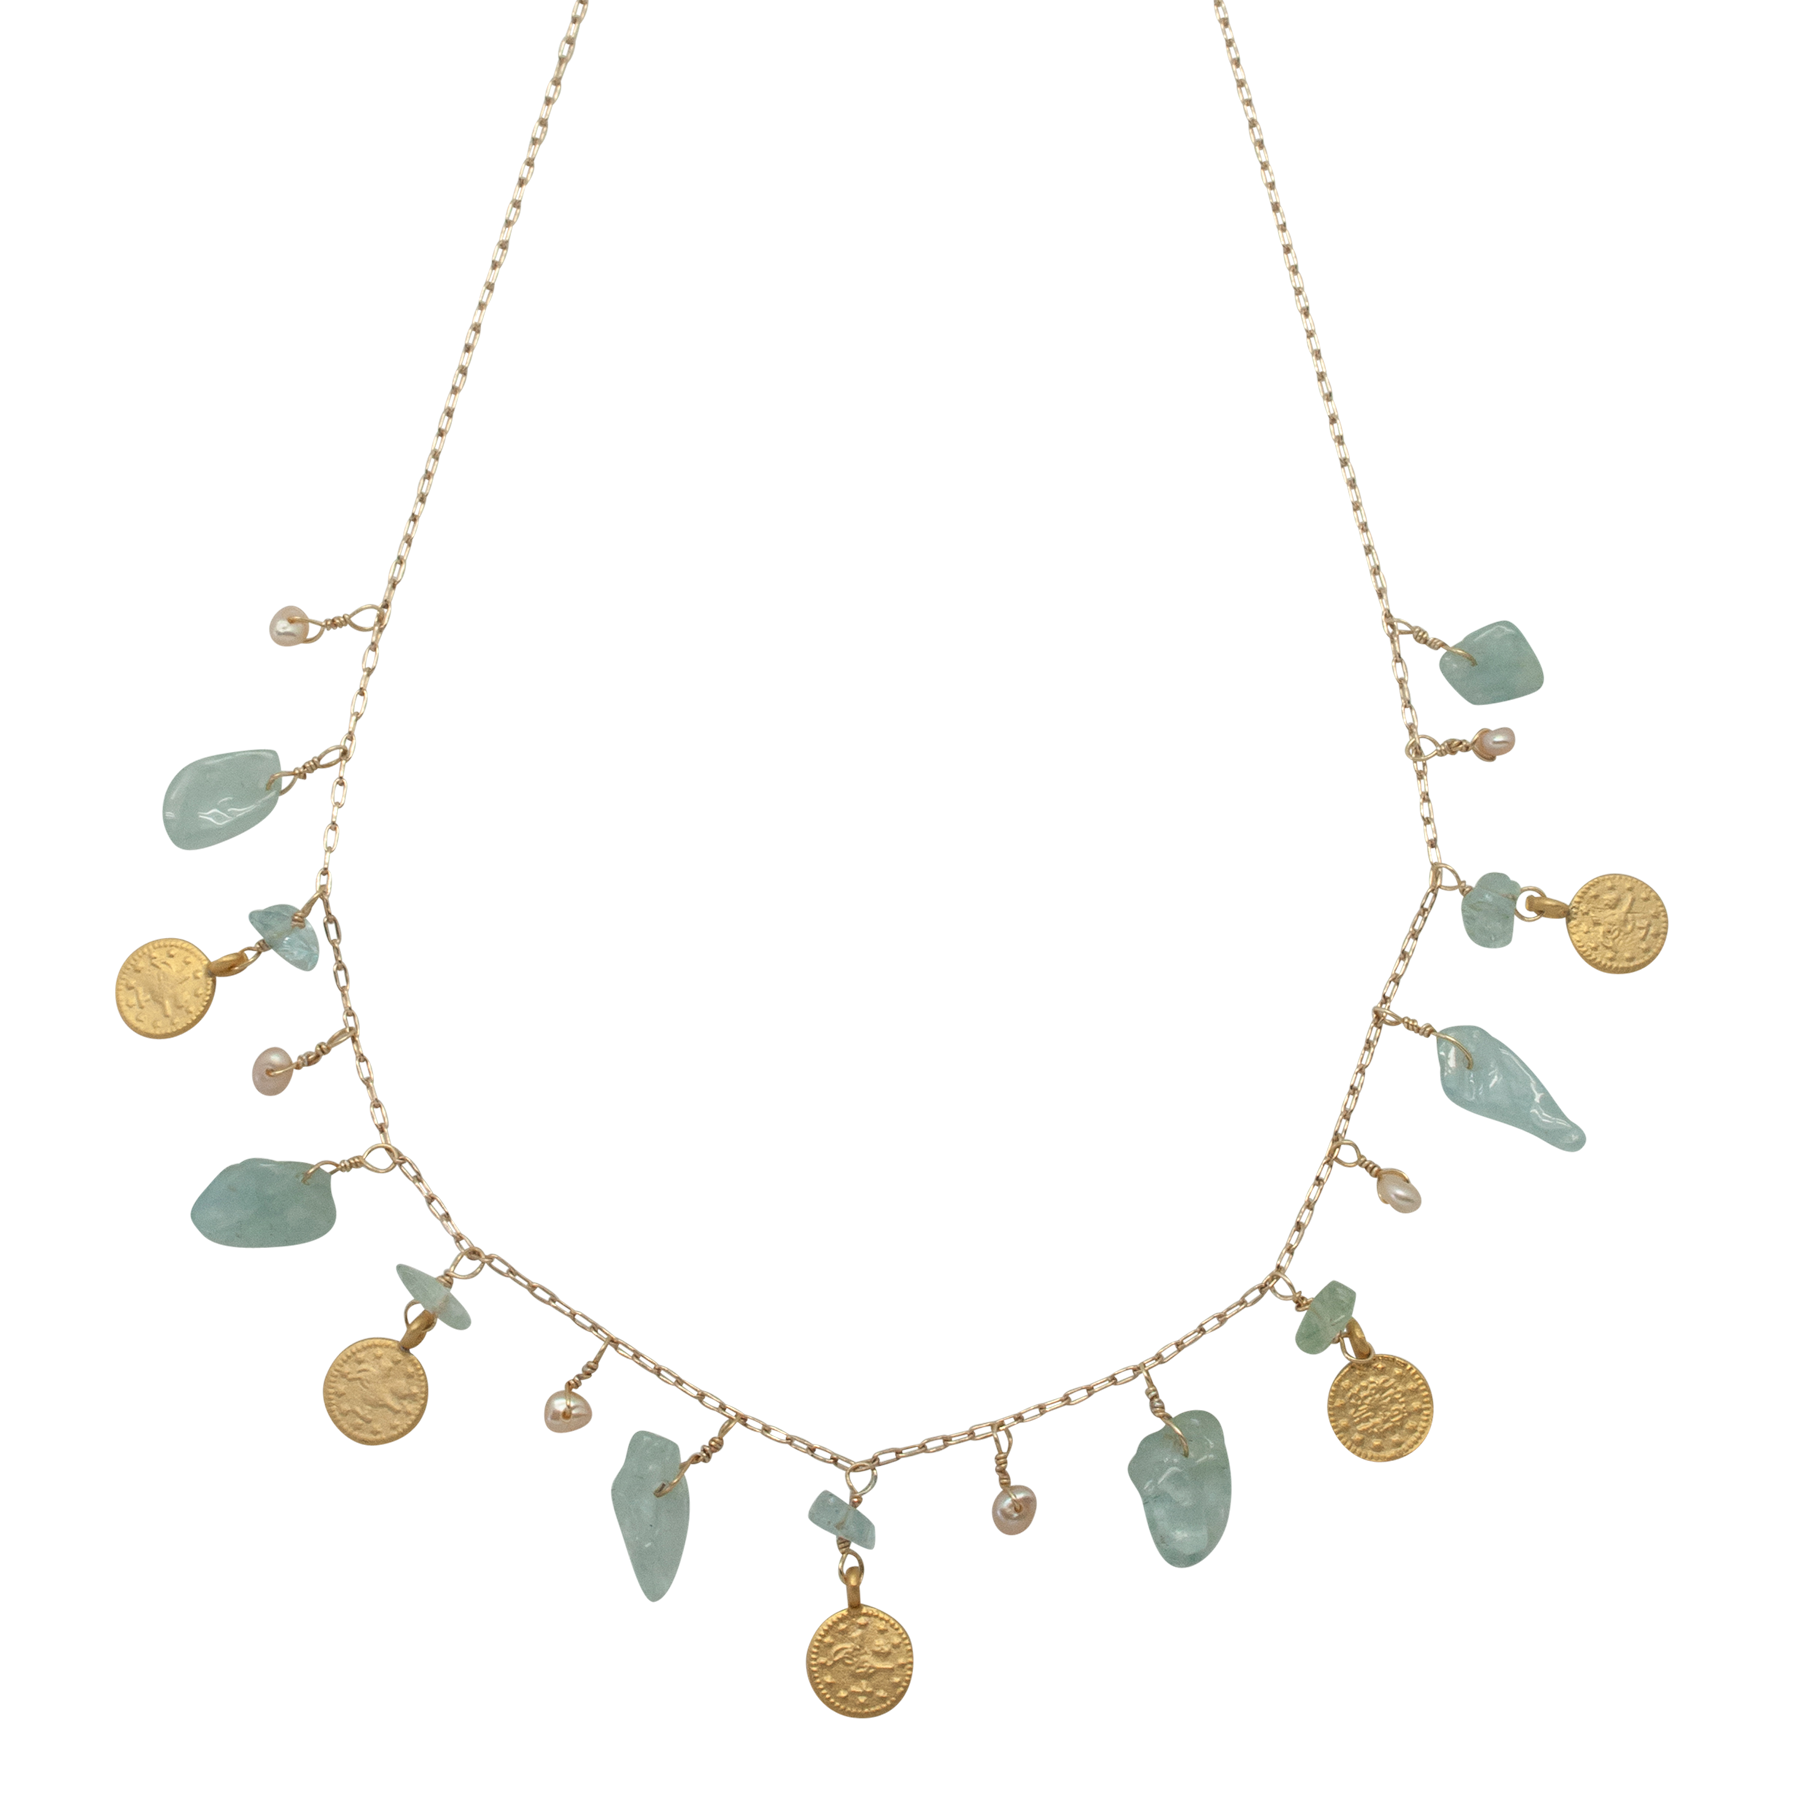 aquamarine disc charm necklace by vivien walsh on white background